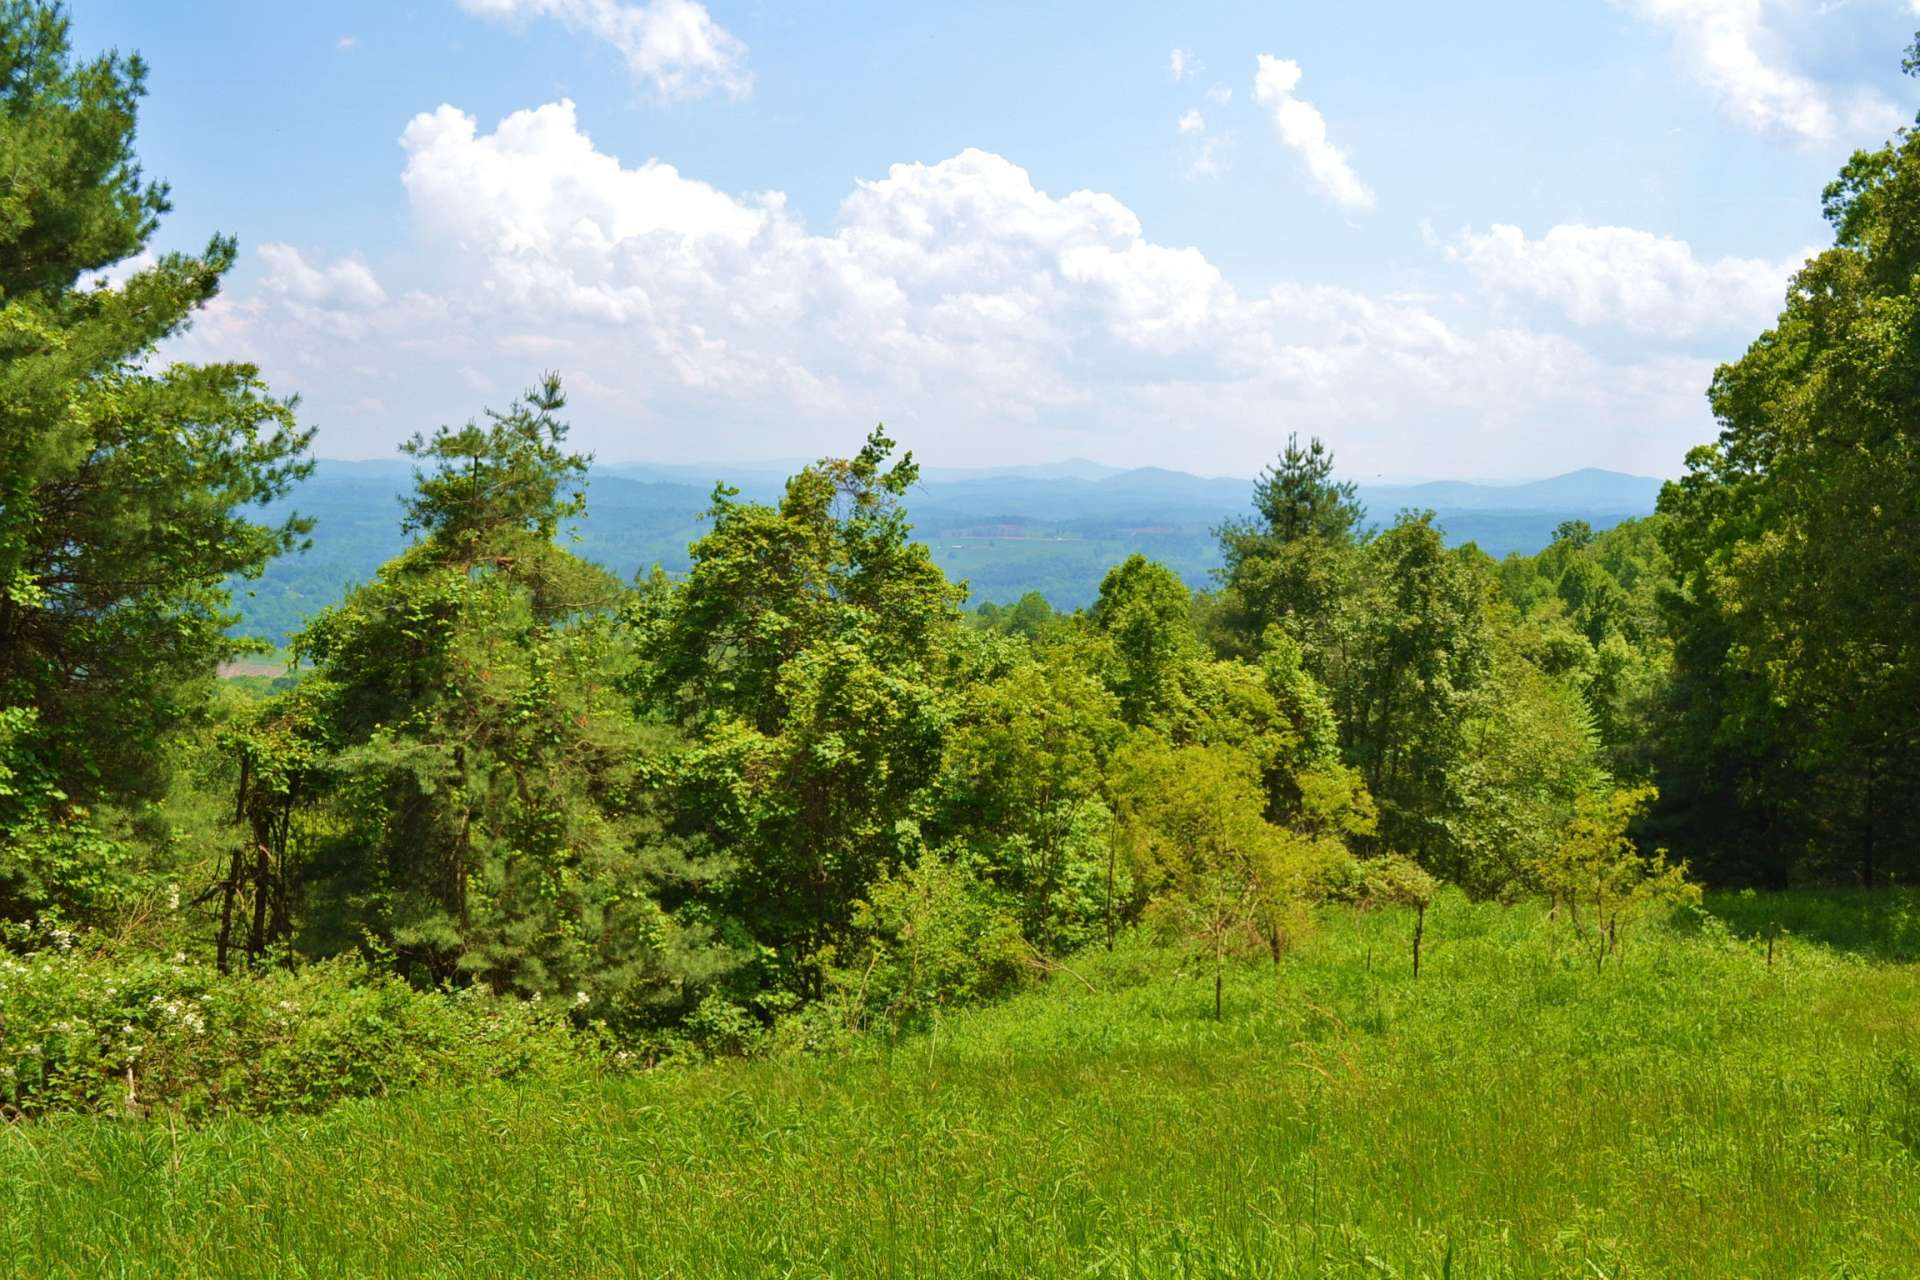 You will enjoy the wildlife that call this mountain home. You can almost hear the rustling of the leaves as a young whitetail strolls through the forest that surrounds this property.